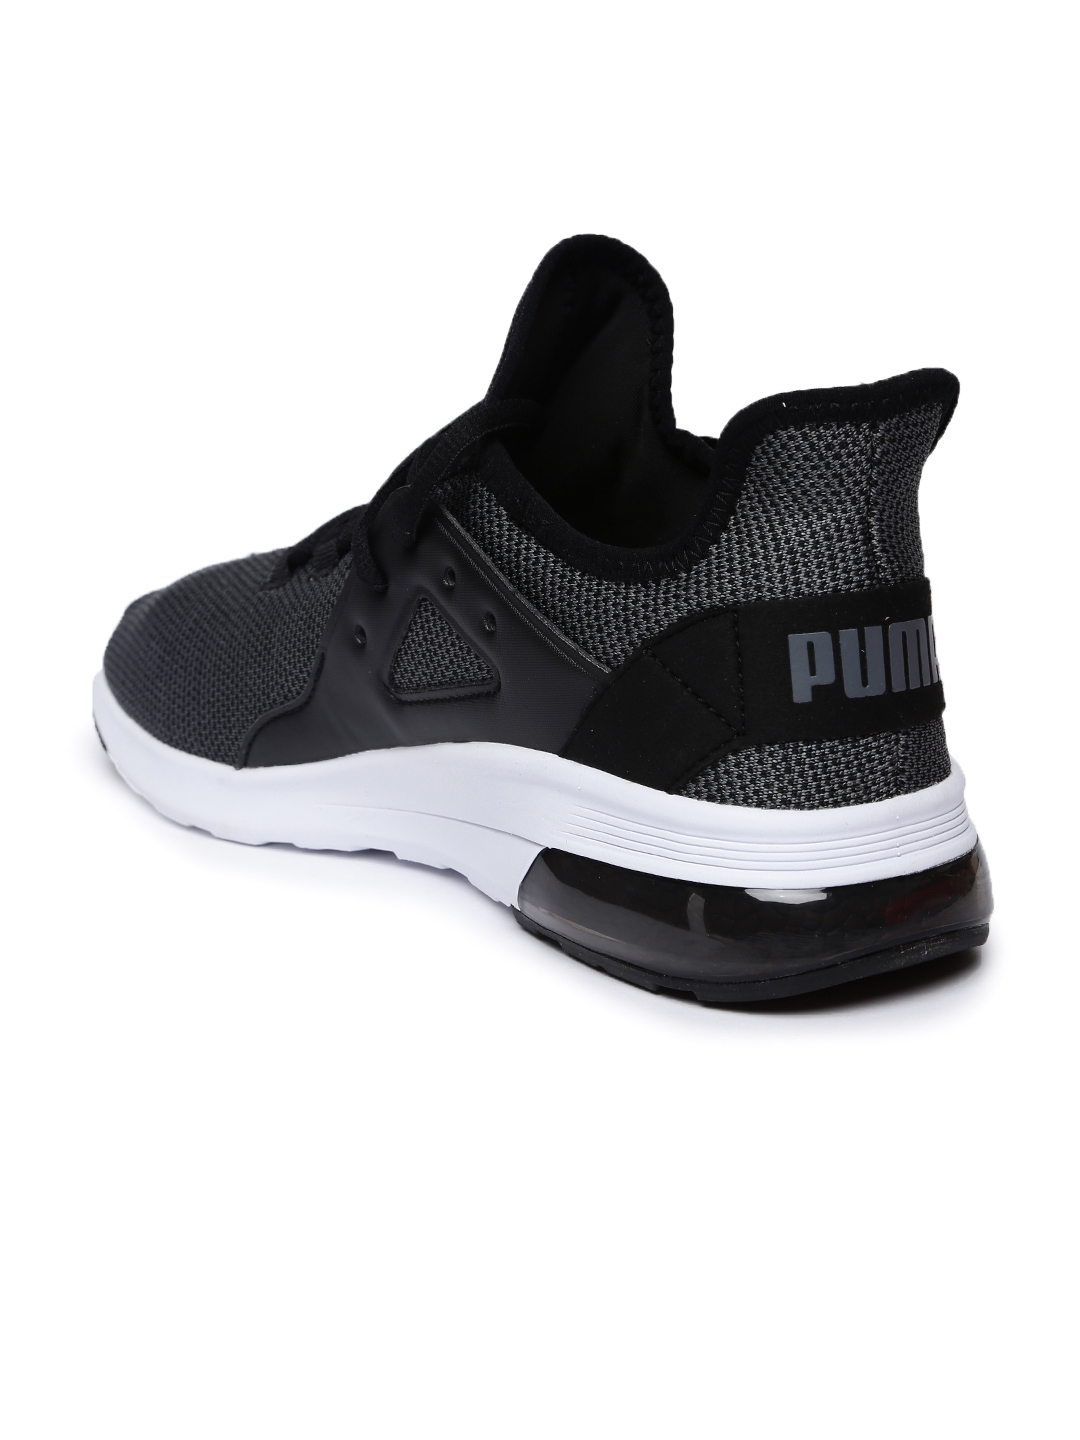 8865dfe630aca4 Buy Puma Men Black Electron Street Knit Sneakers - Casual Shoes for ...